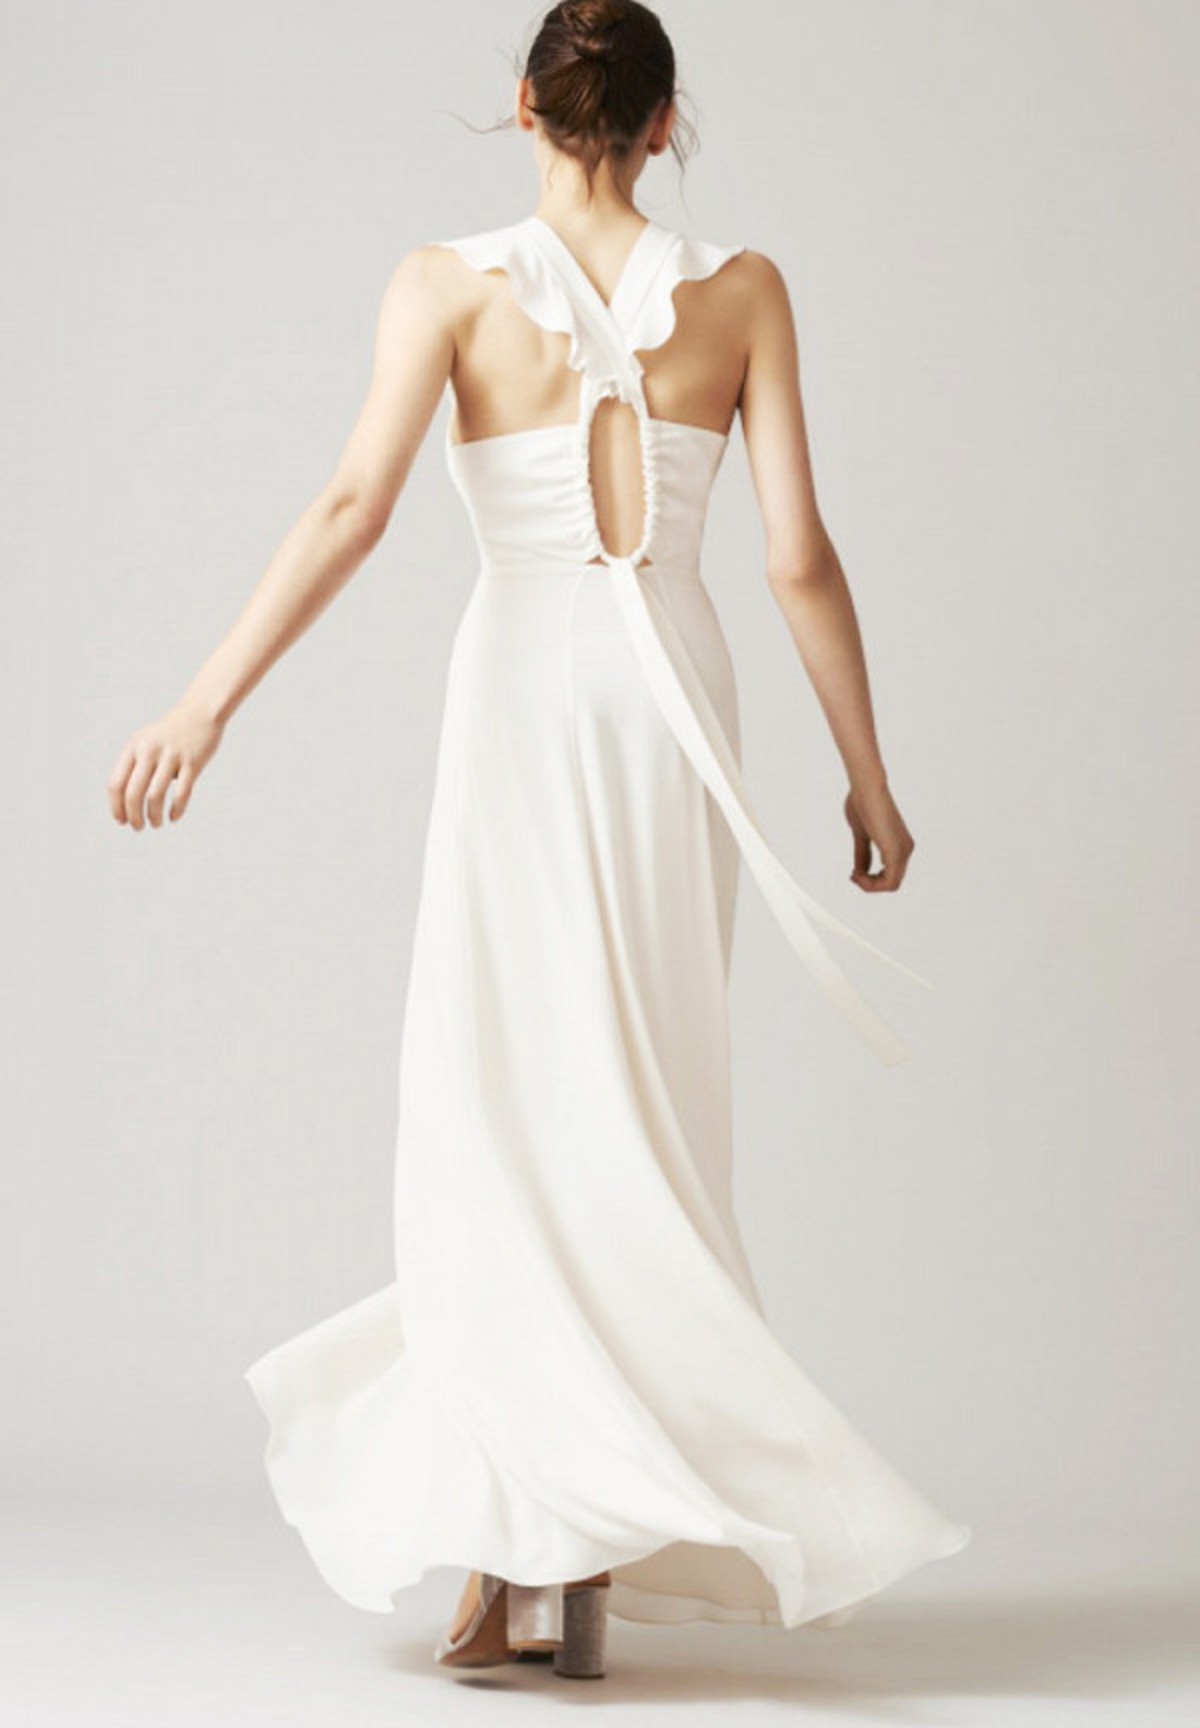 whistles-just-announced-its-launching-a-bridal-collectionsee-it-here-1954681-1477552867.600x0c